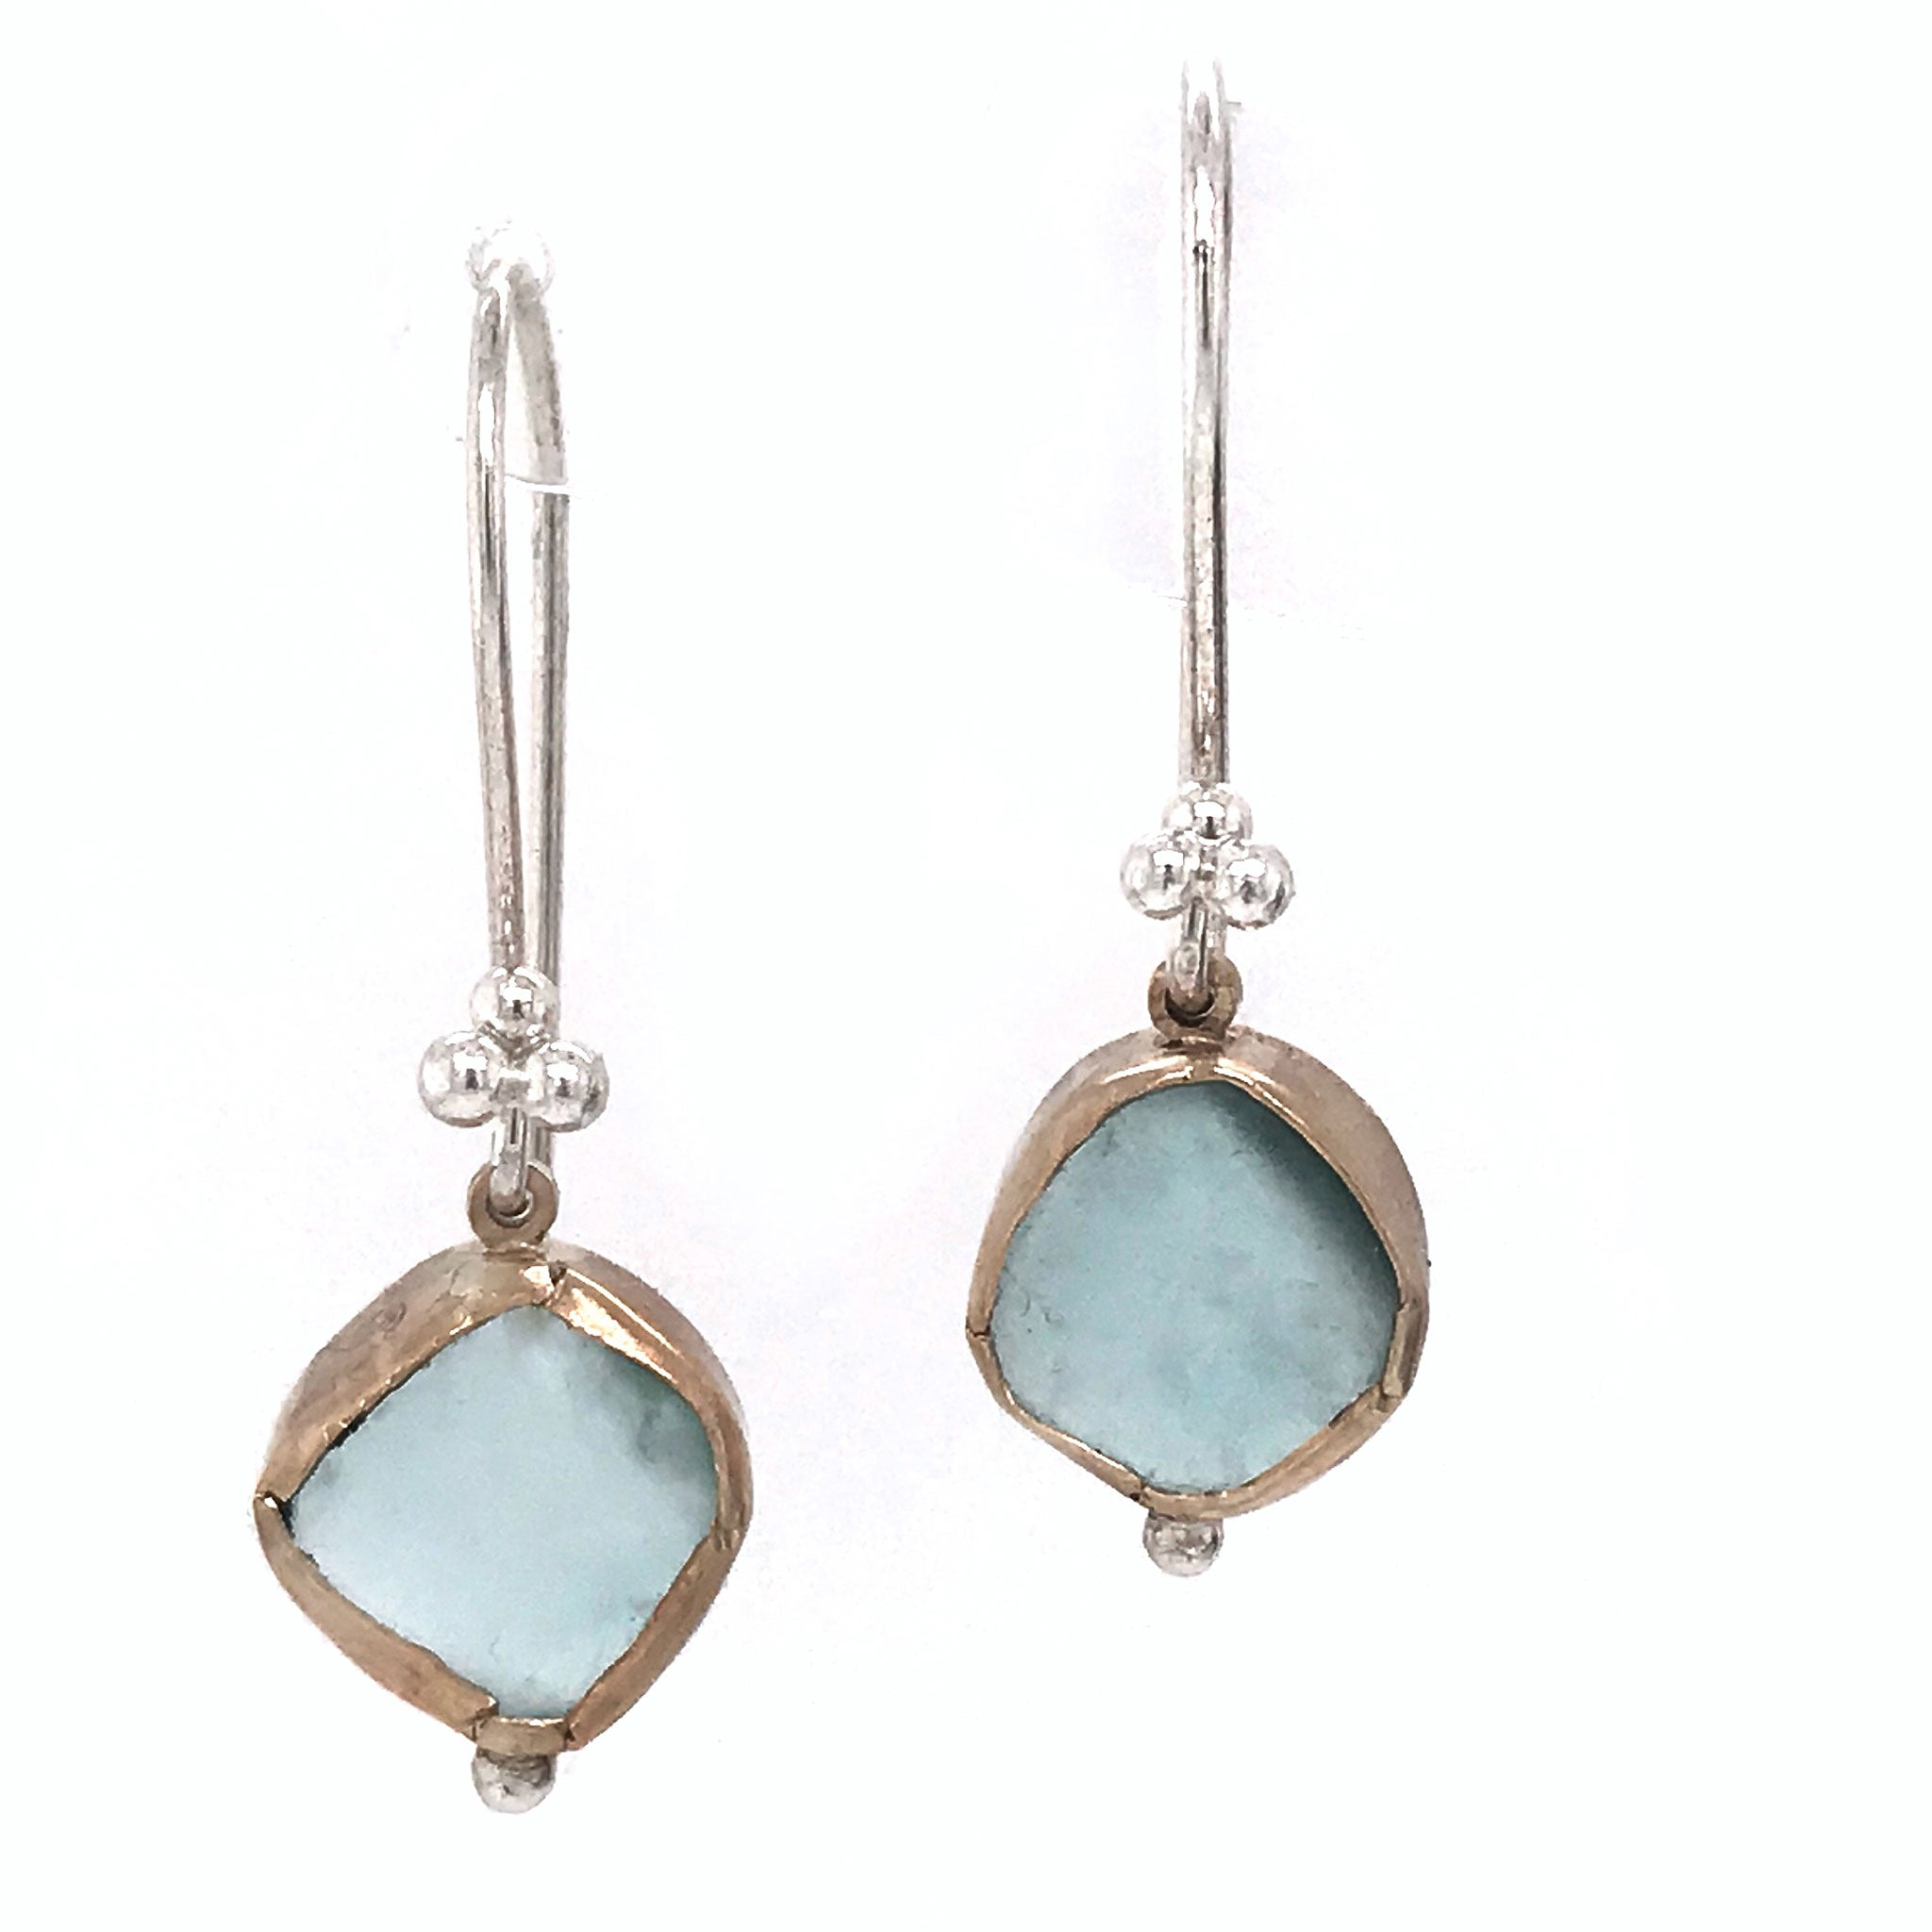 aqua beach glass earrings bezel set in 14k gold hanging on silver hooks Kriket Broadhurst seaglass jewellery